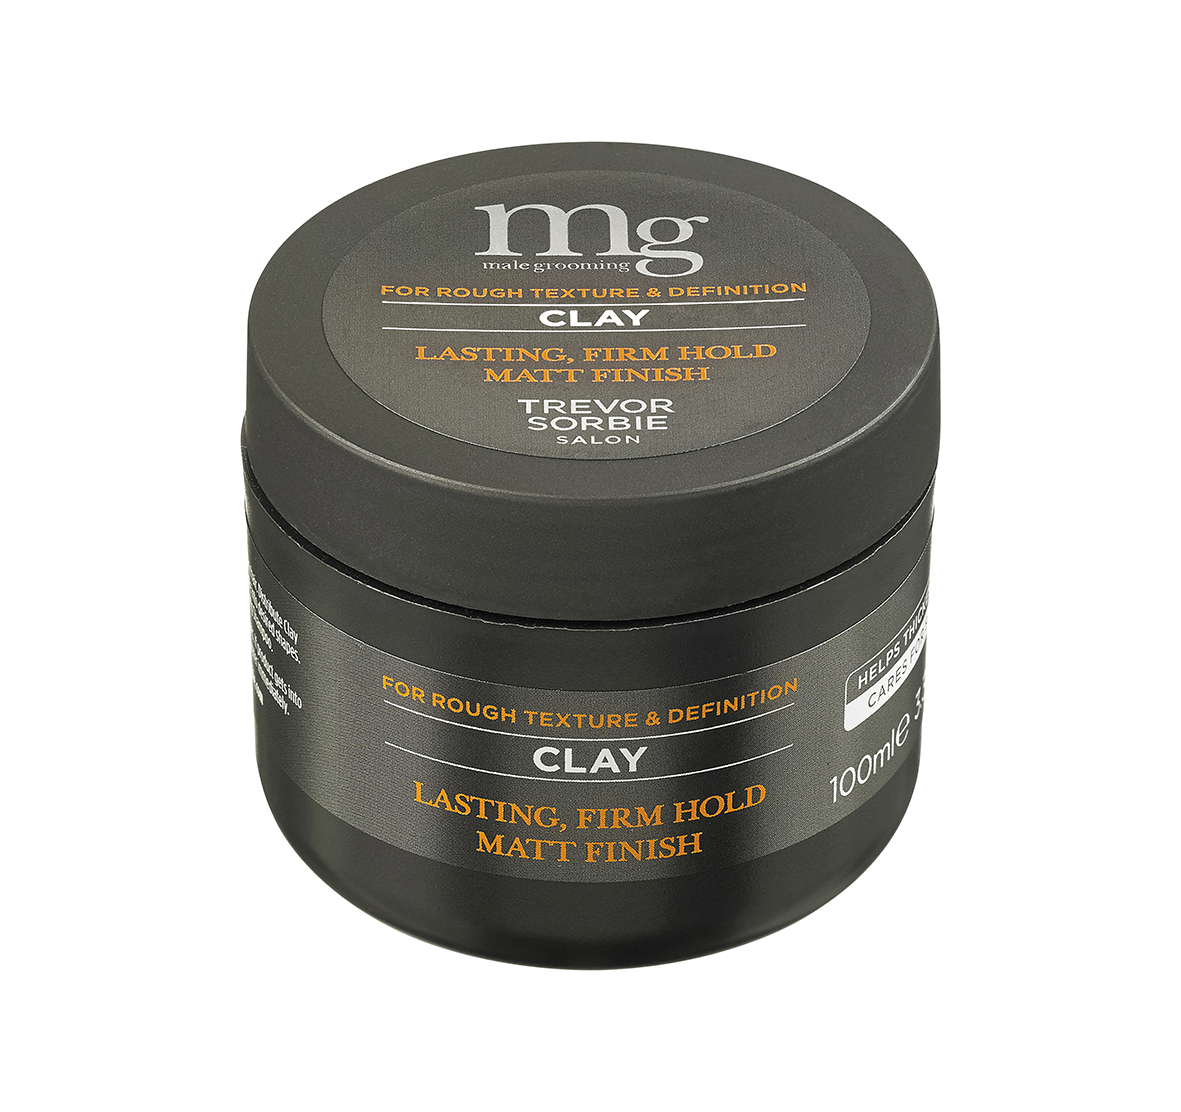 60a8ab8c14d Male Grooming Clay